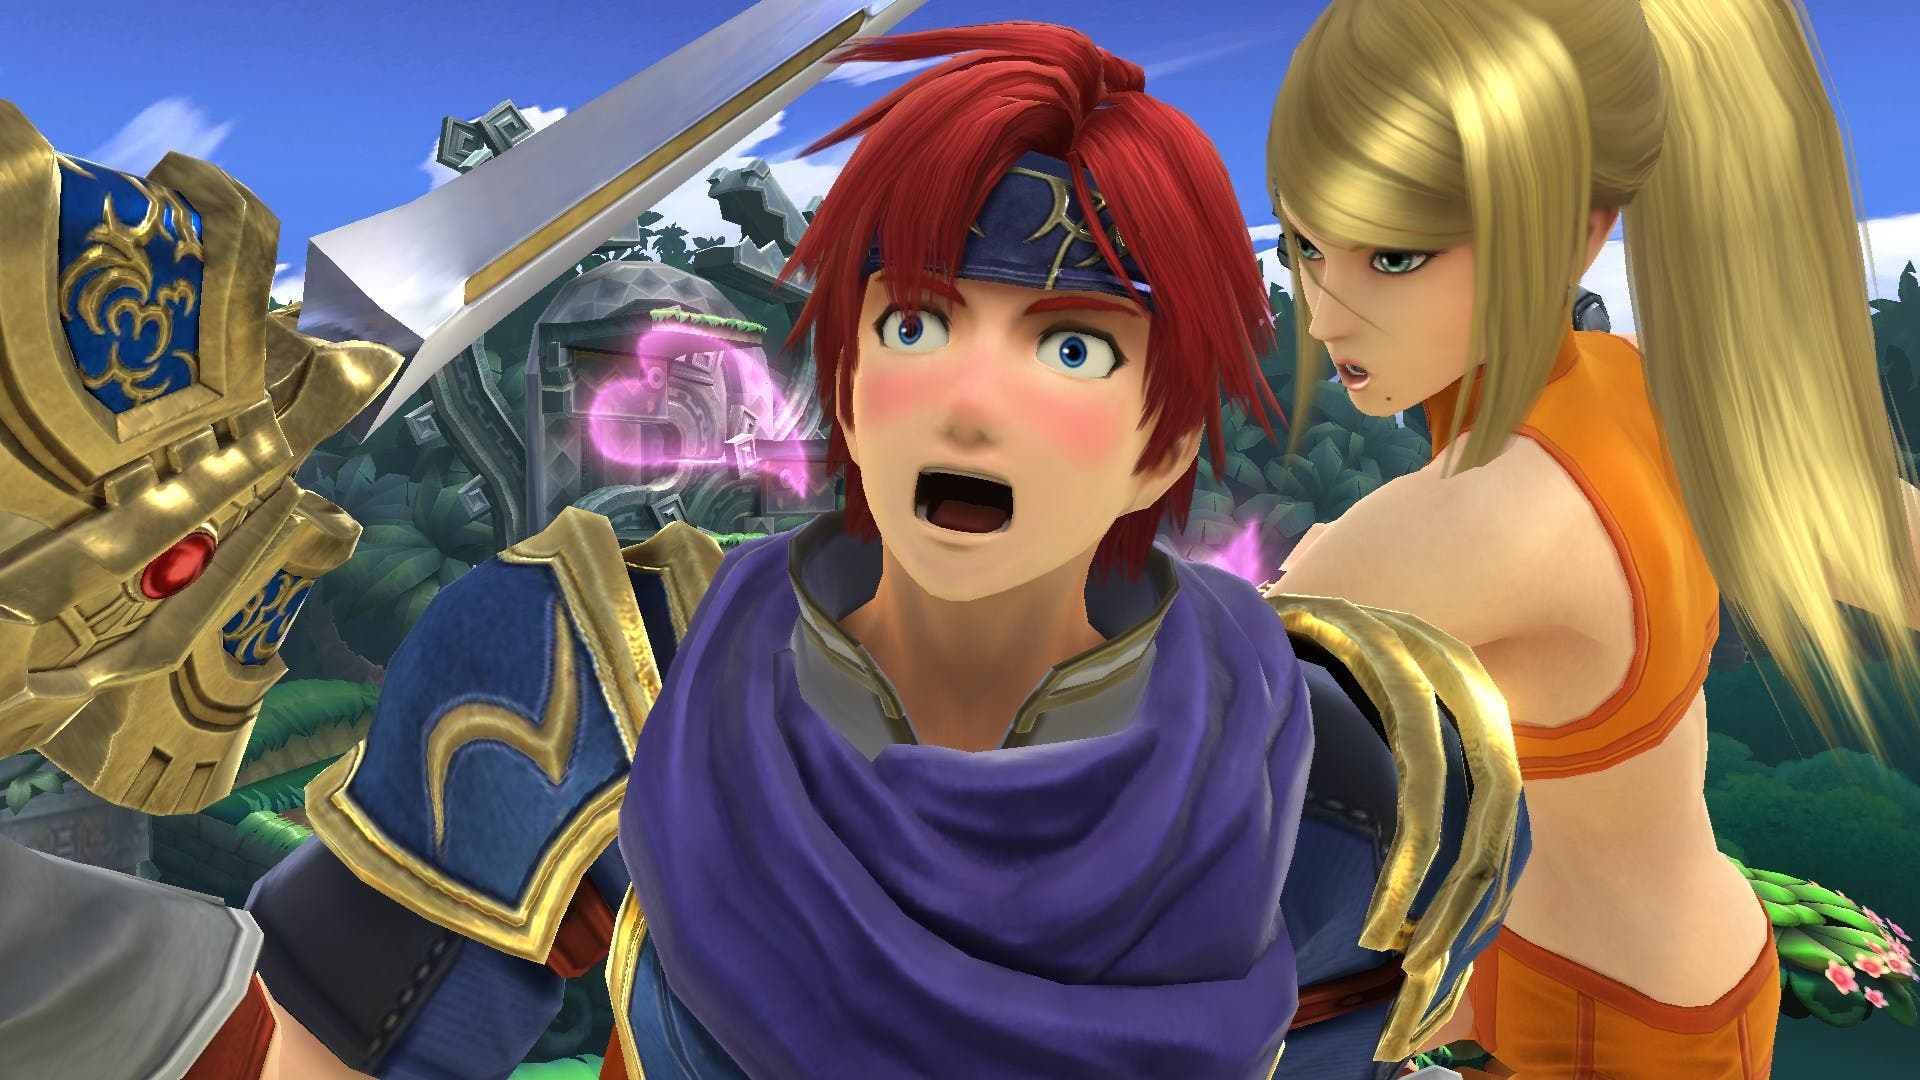 Los Eventos de conquista regresarán a 'Super Smash Bros. for Wii U' en enero